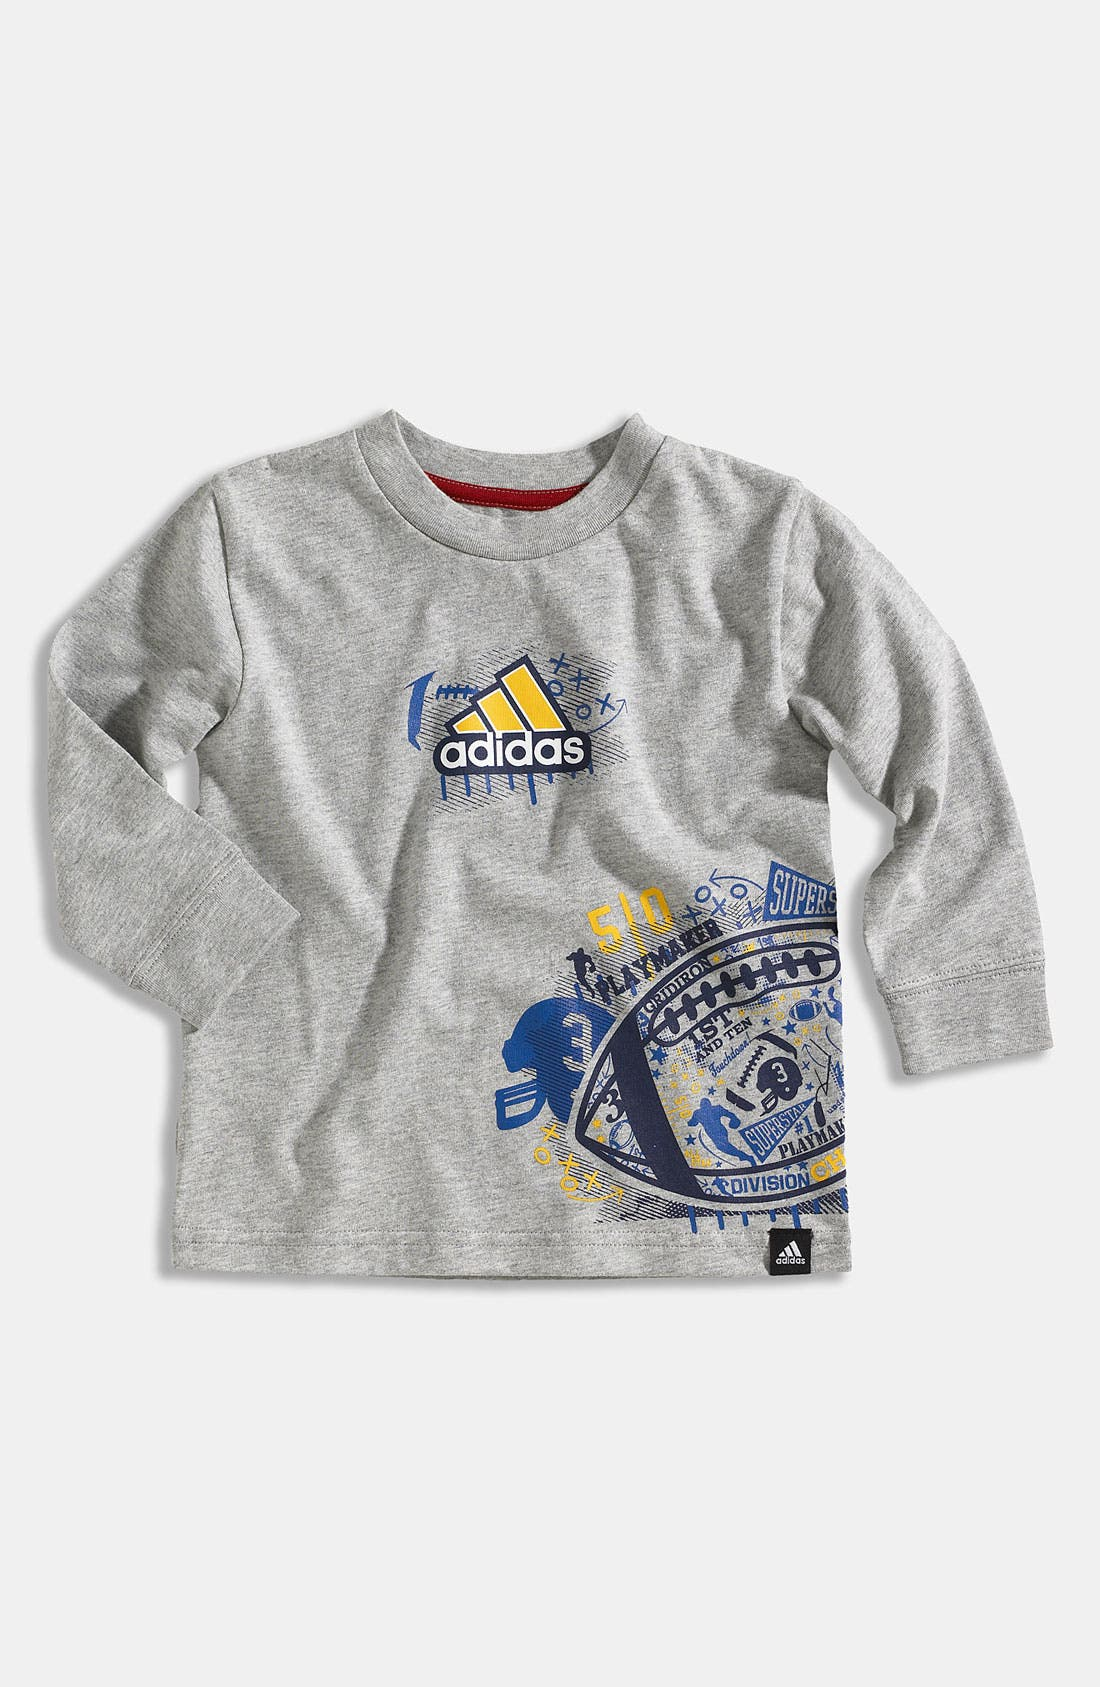 Main Image - adidas 'Playbook Wrap' T-Shirt (Infant)